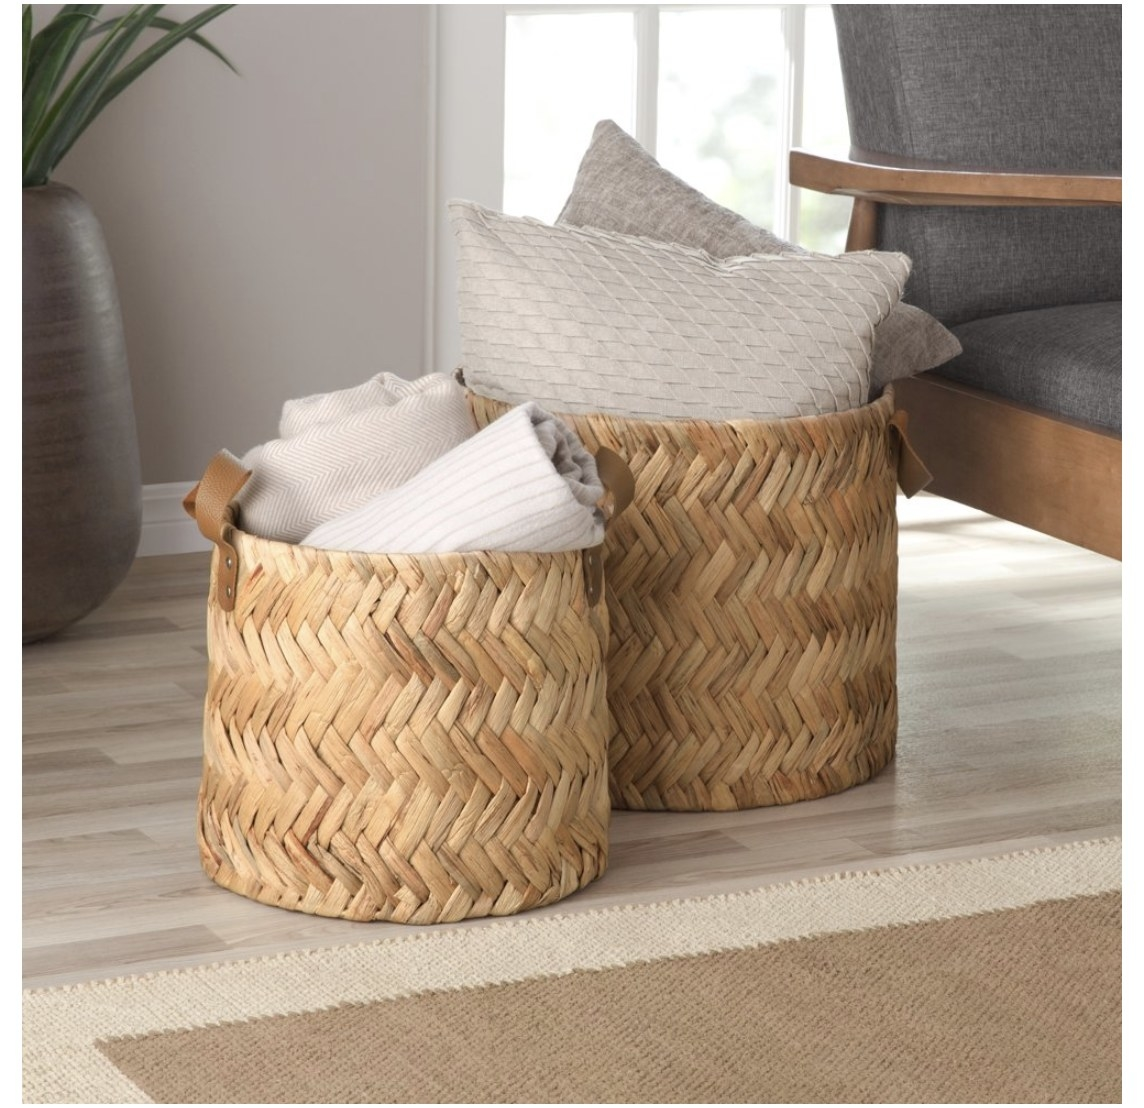 Two straw herringbone baskets in different sizes